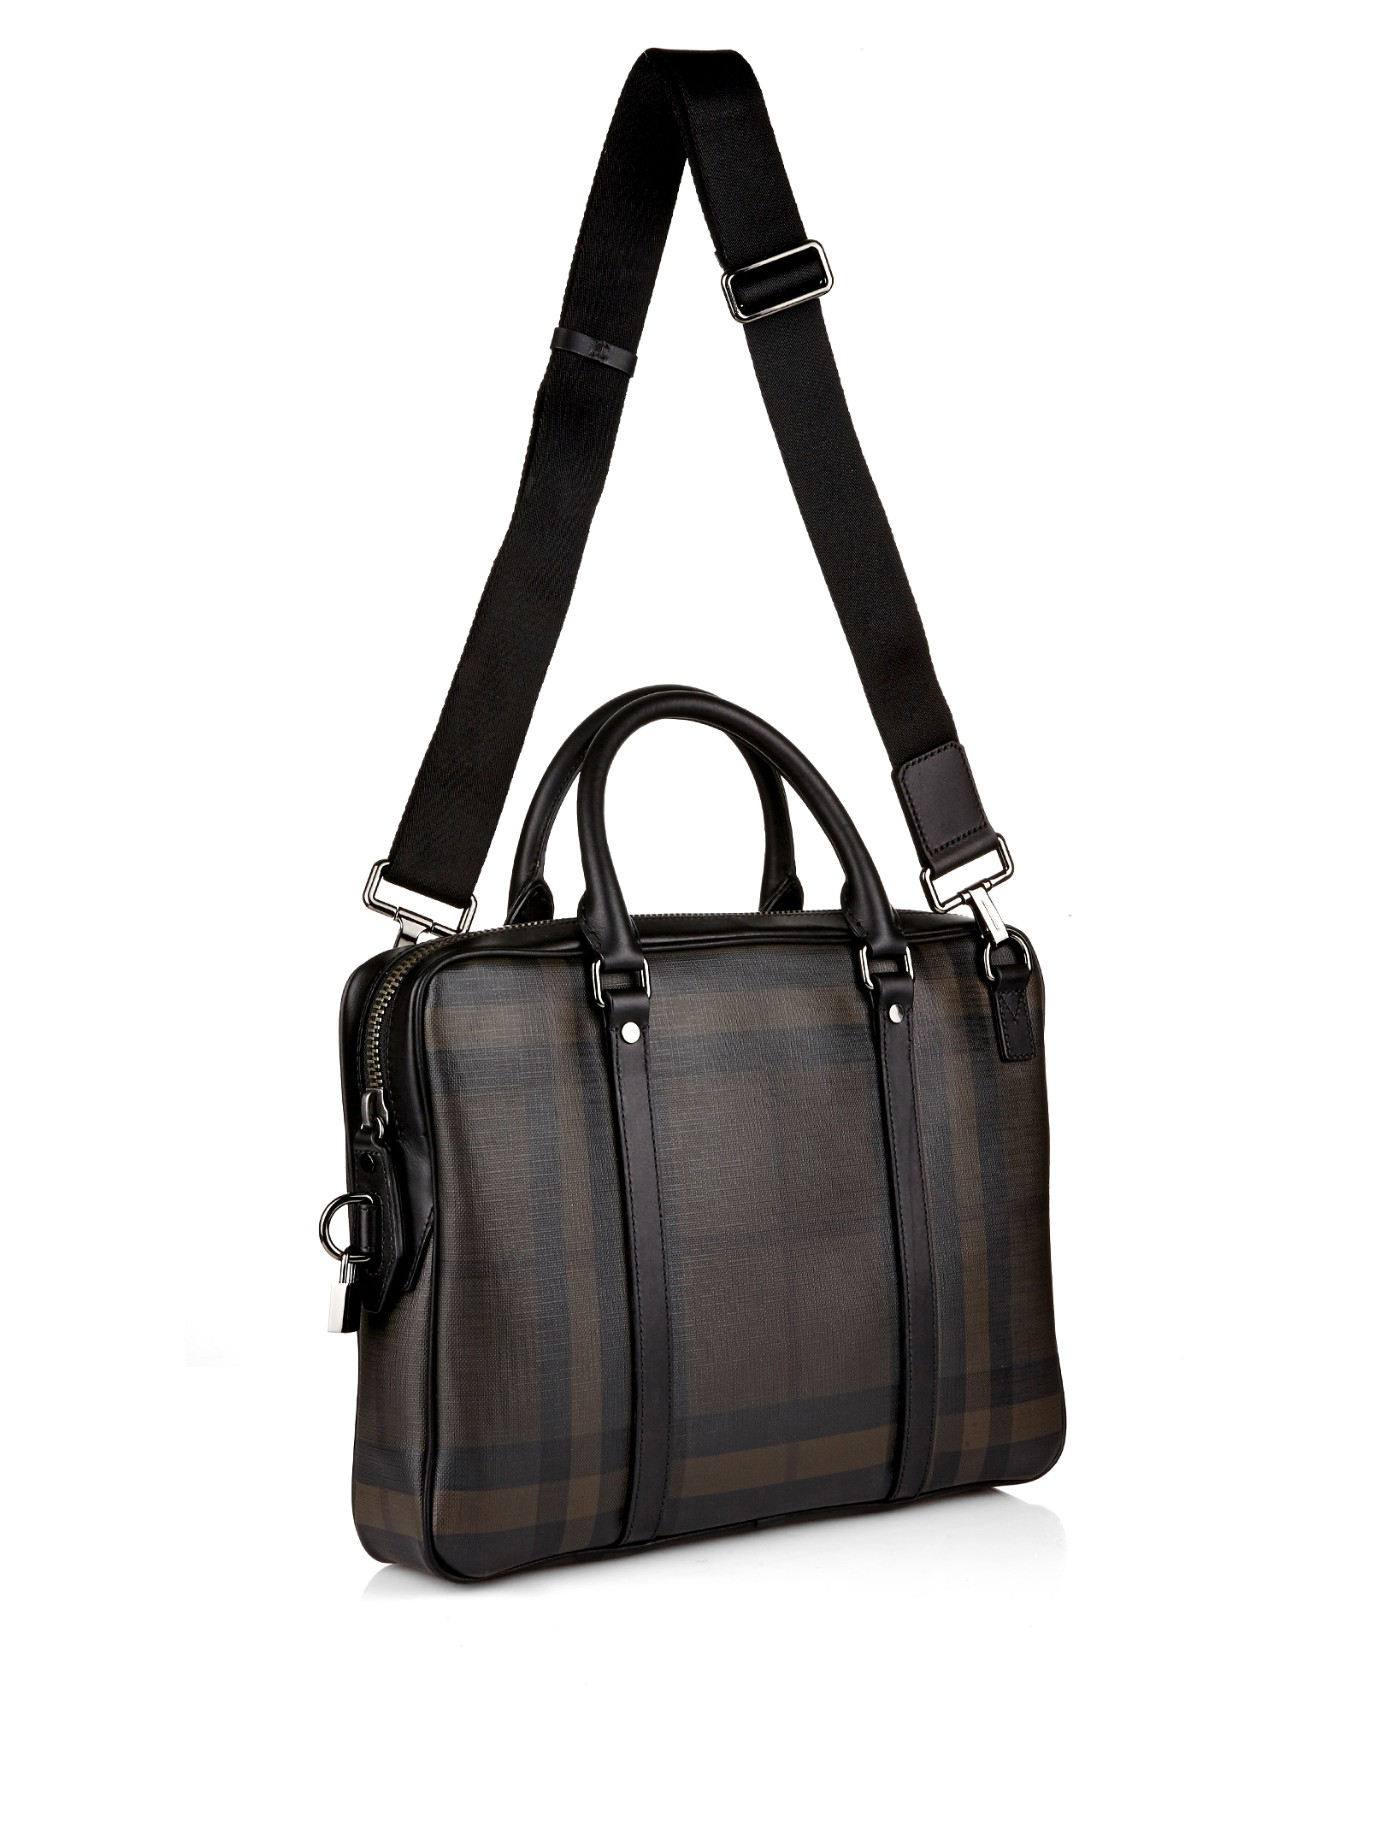 bd82f610f86 Burberry Brit Smoked Check Leather Laptop Bag in Black for Men - Lyst